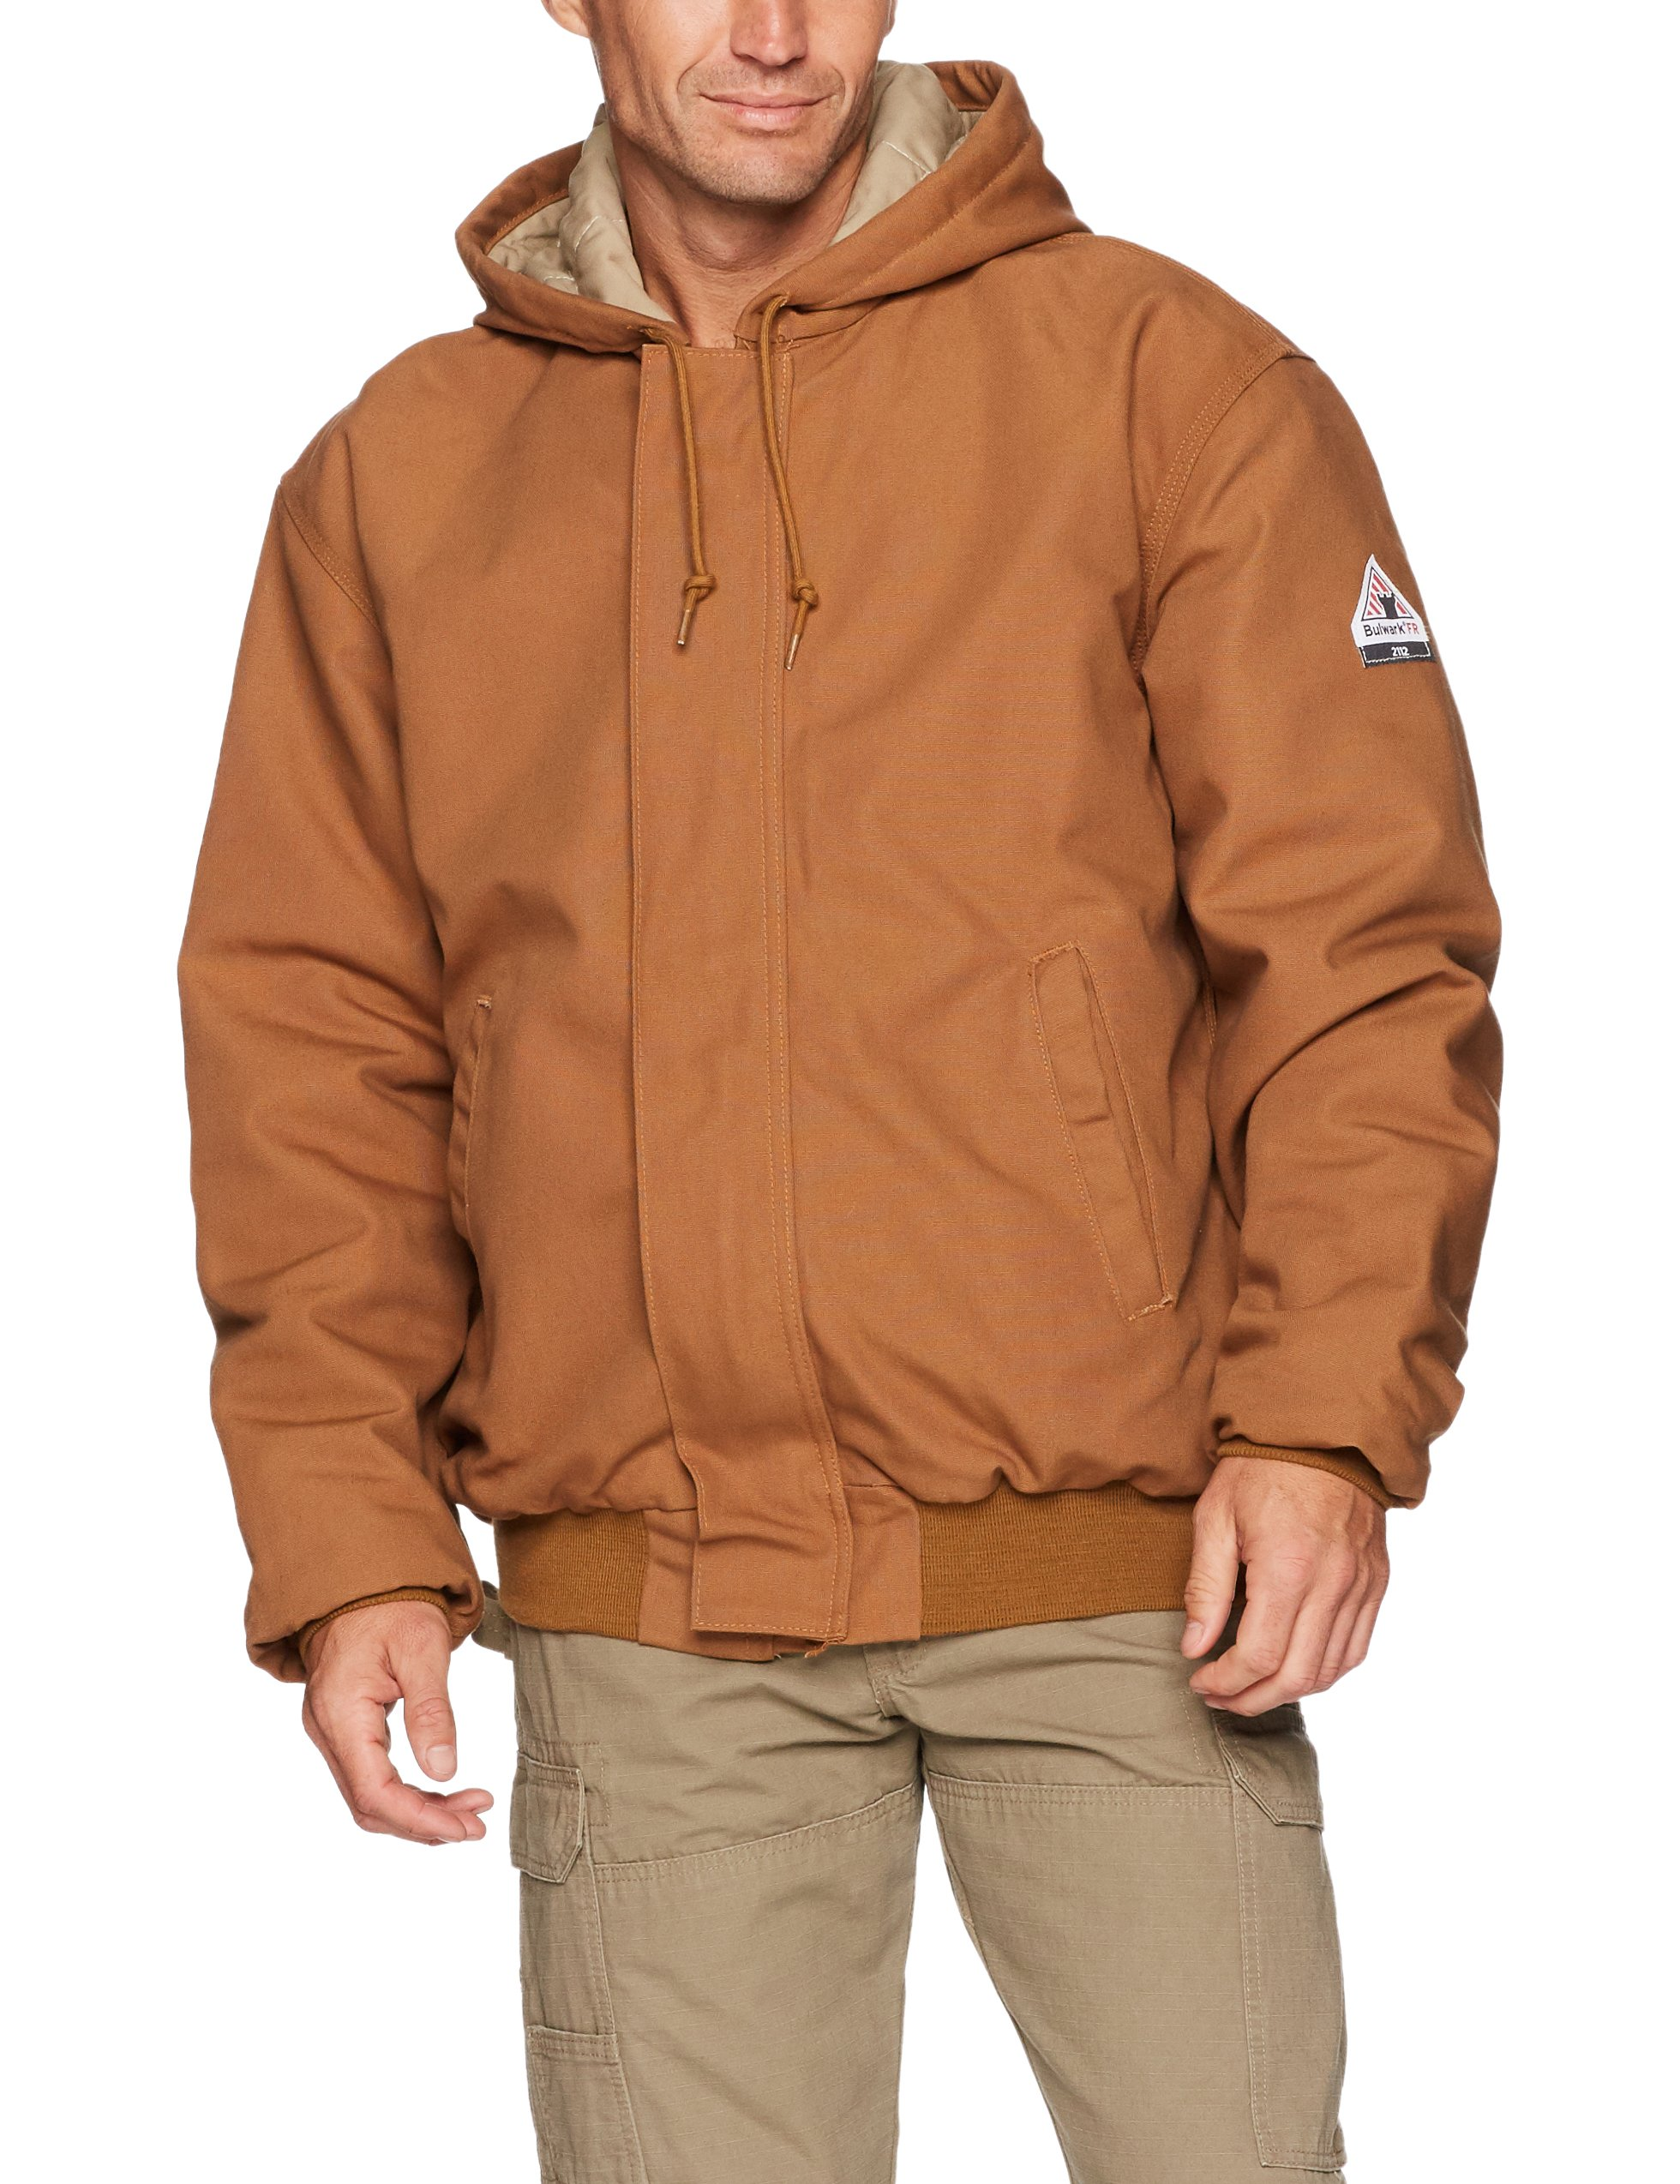 Bulwark Men's Hooded Jacket with Knit Trim, Brown Duck, Medium